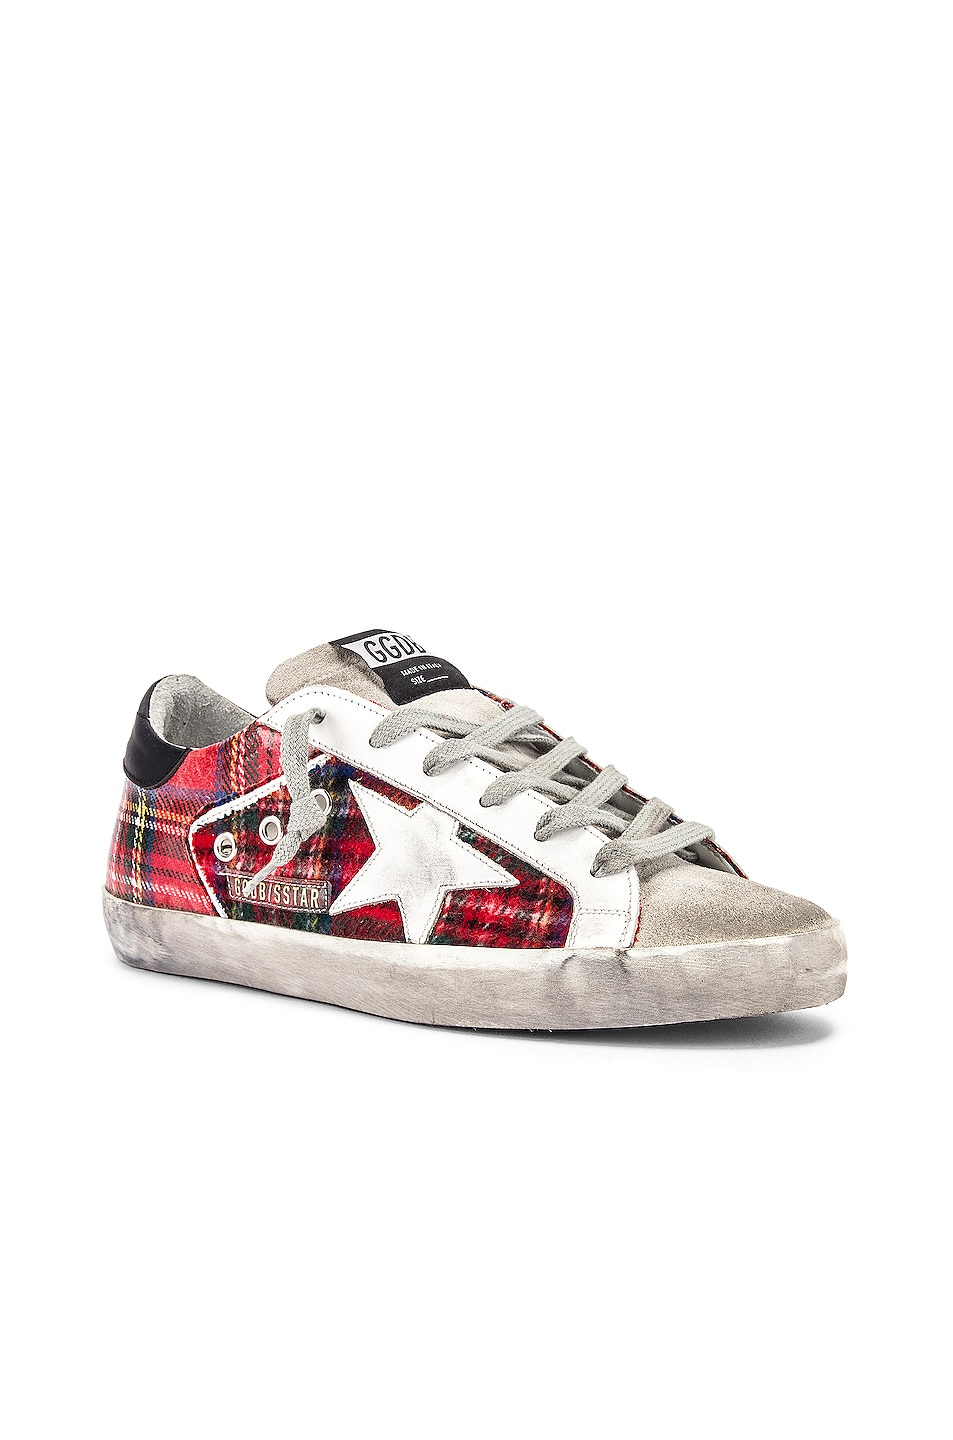 Image 2 of Golden Goose Superstar Sneaker in Double Check & White